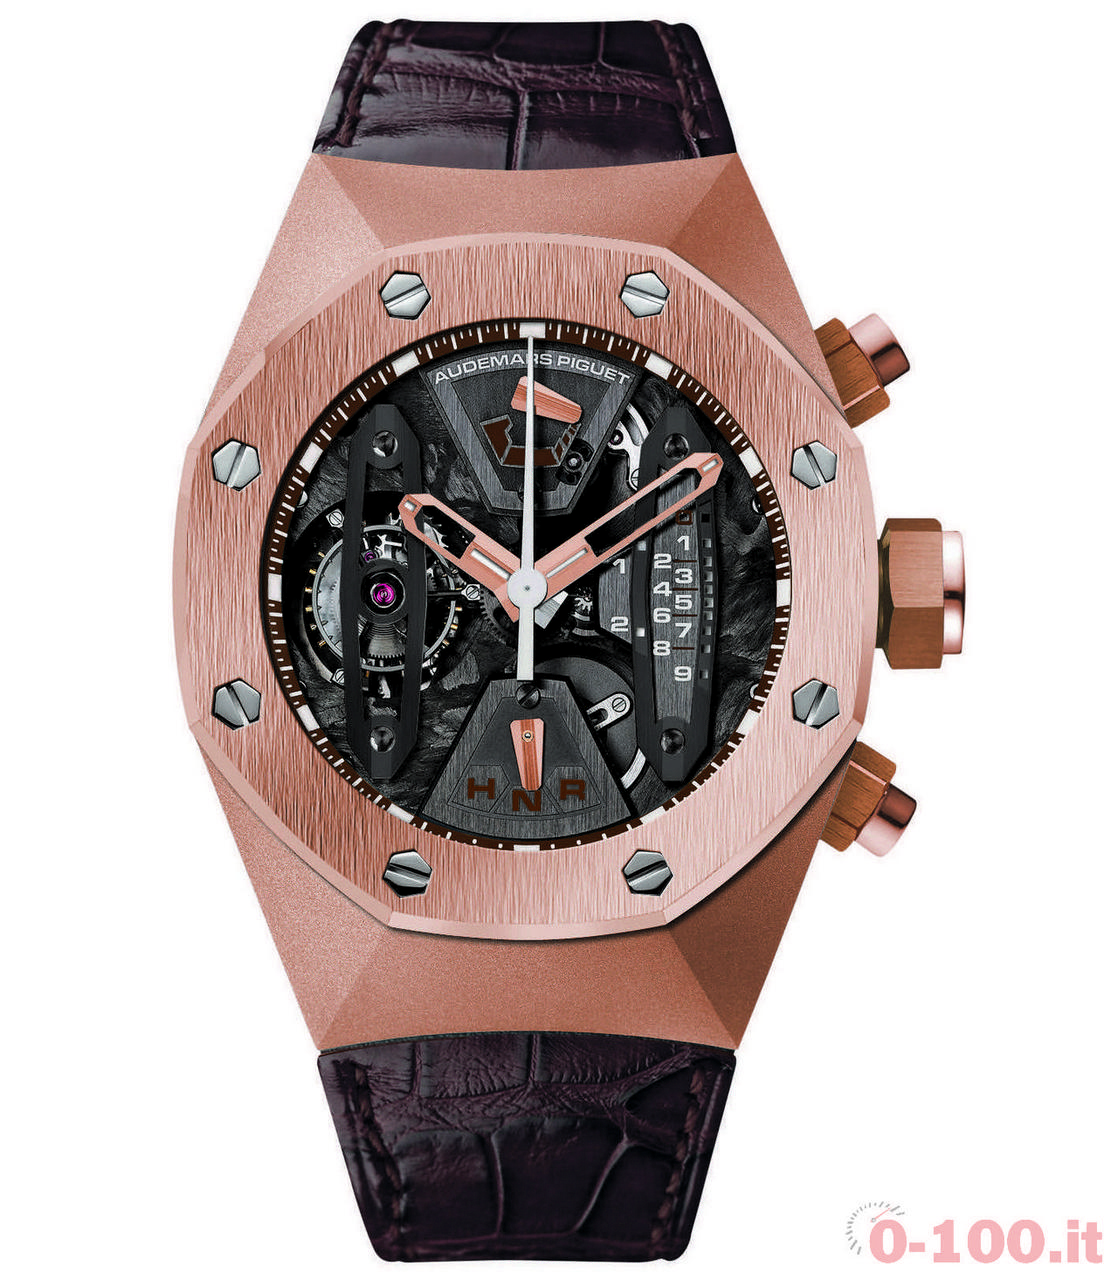 sihh-2015-audemars-piguet-tourbillon-cronografo-royal-oak-concept-44-mm-ref-26223or-oo-d099cr-01_0-100_2